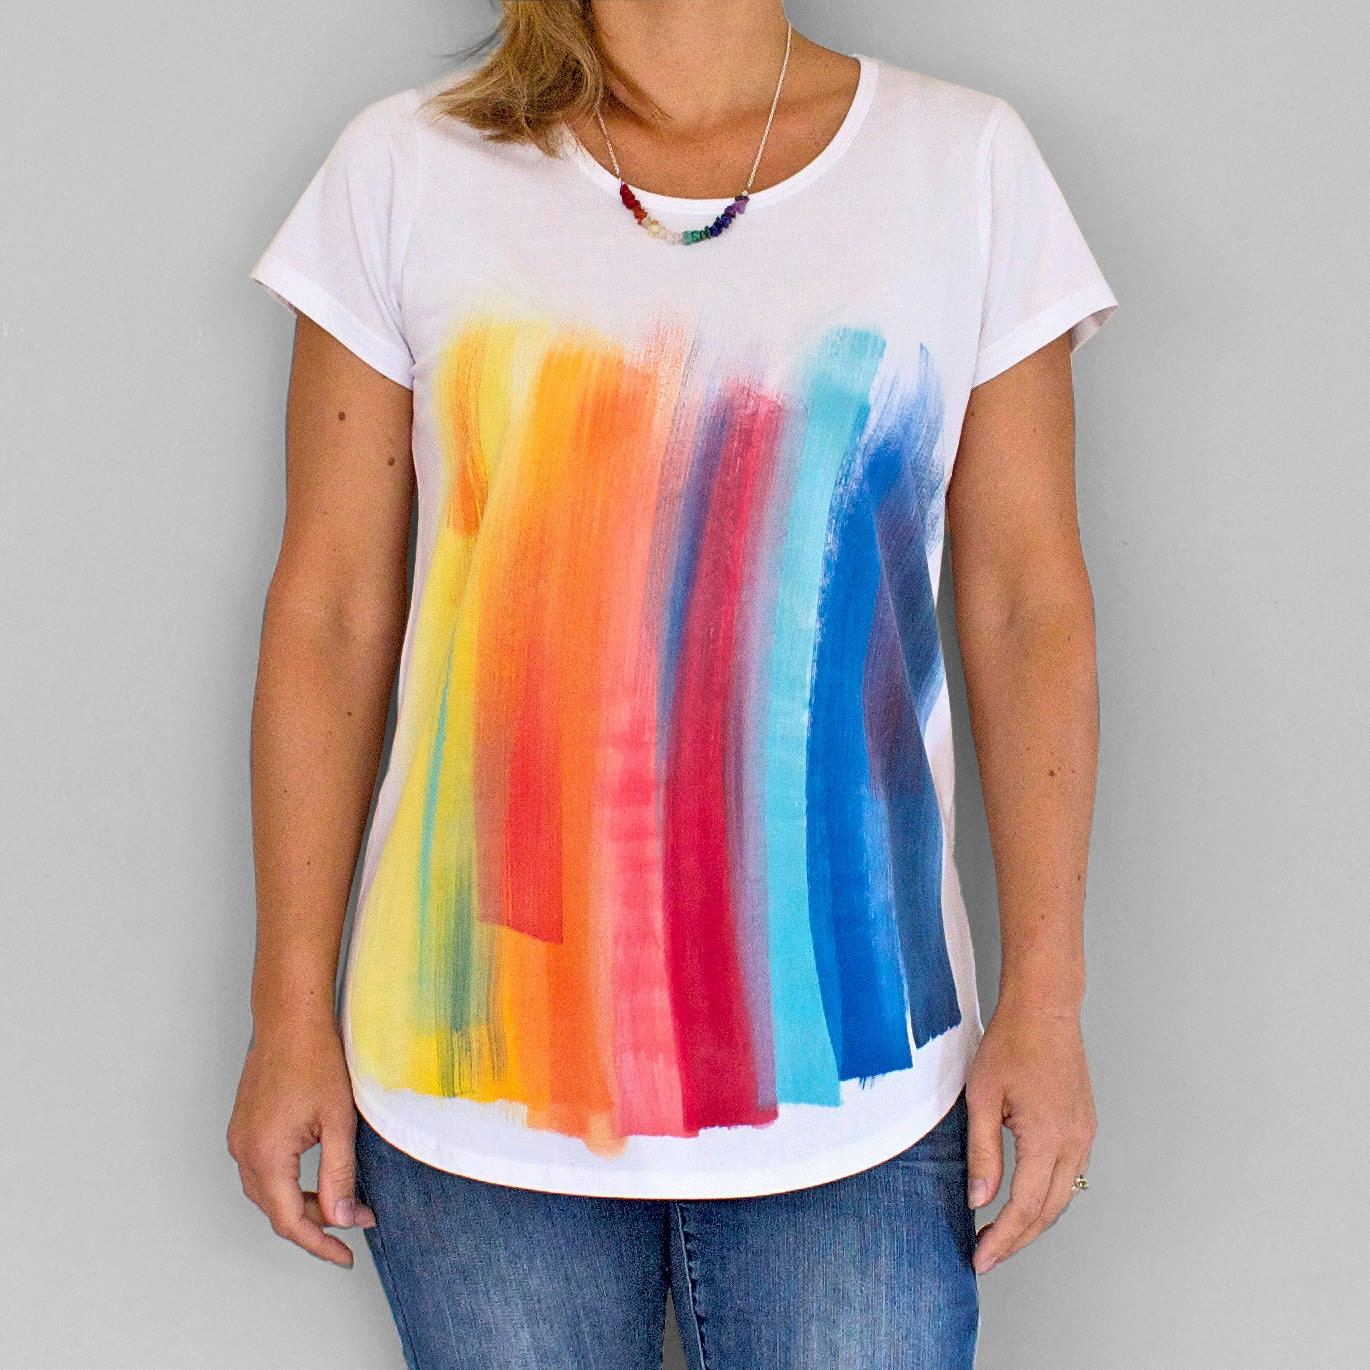 RAINBOW on WHITE Rainbow T shirt Women s t shirt Hand painted